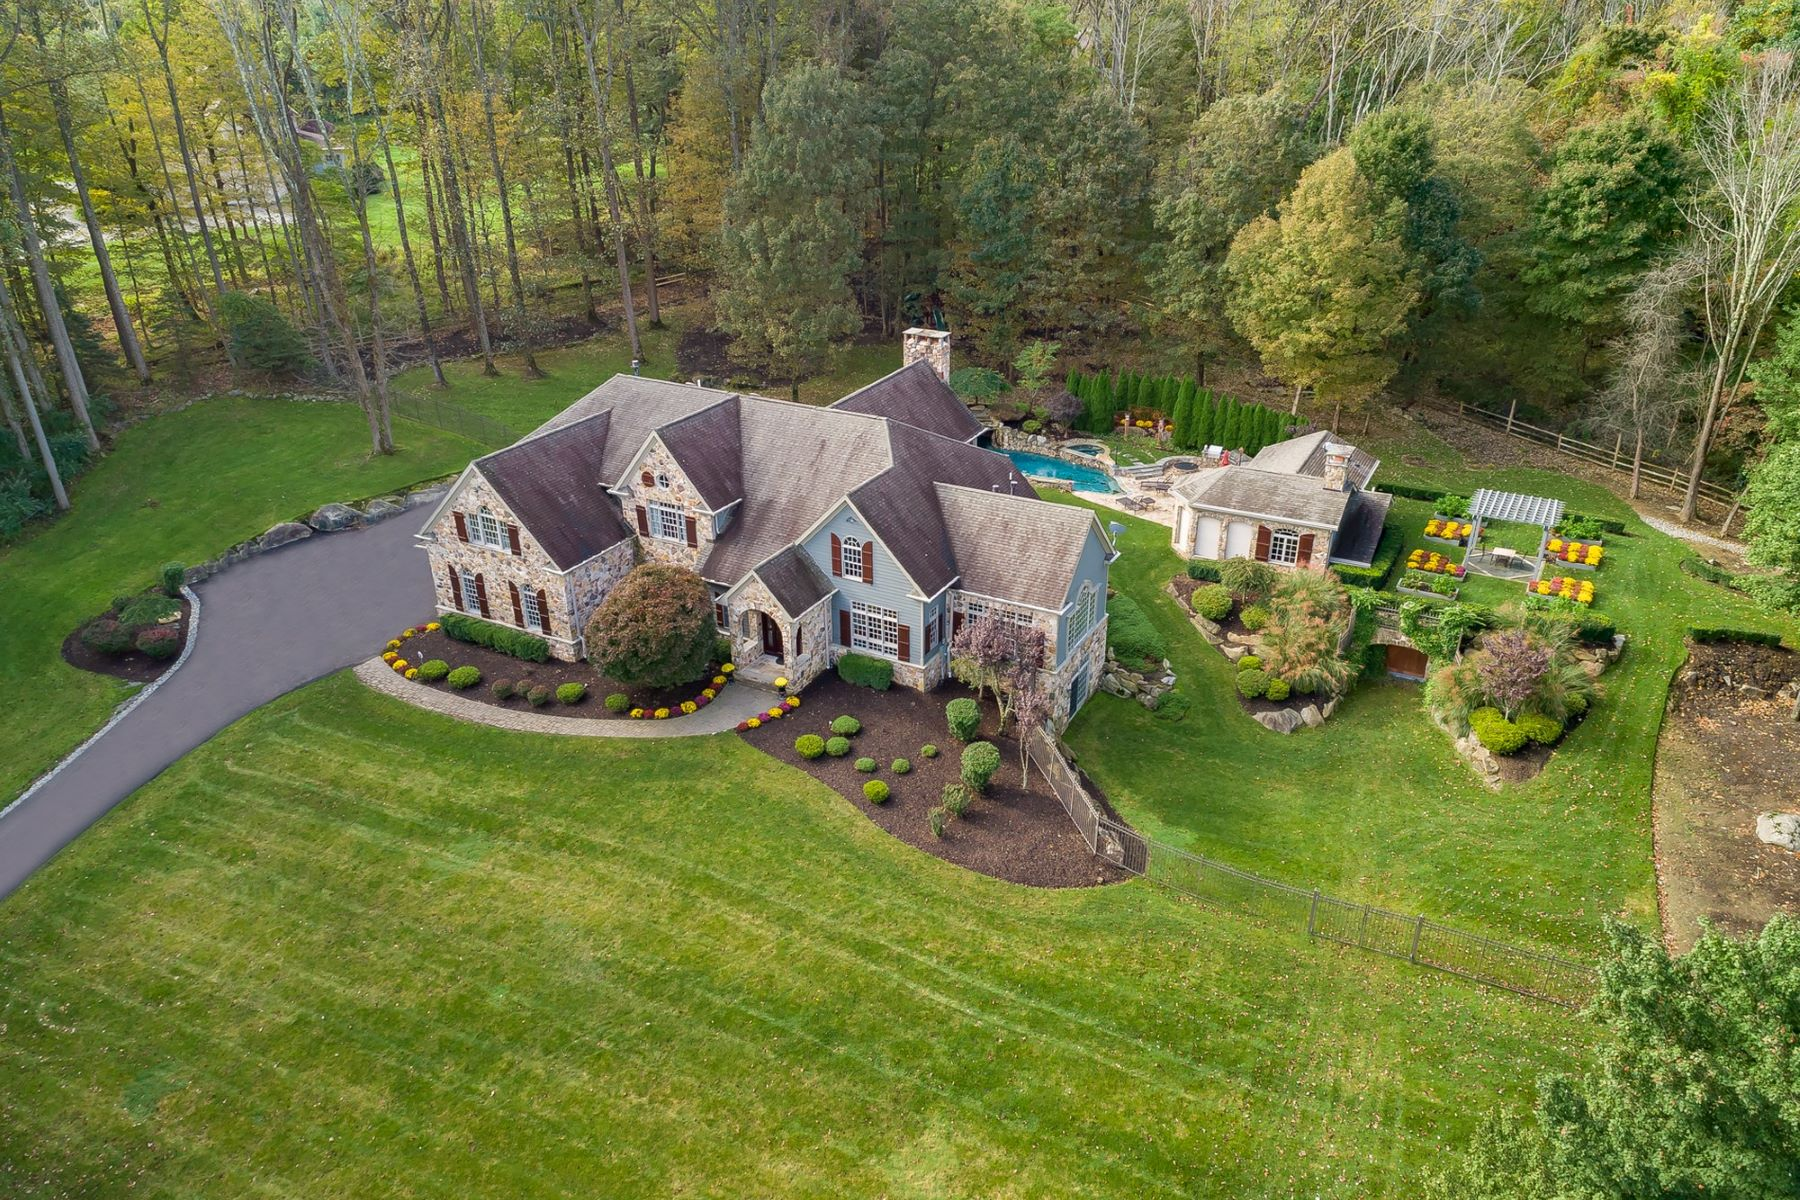 Single Family Homes for Sale at Entertainers Dream Home 11 Old Mine Road Tewksbury Township, New Jersey 07830 United States